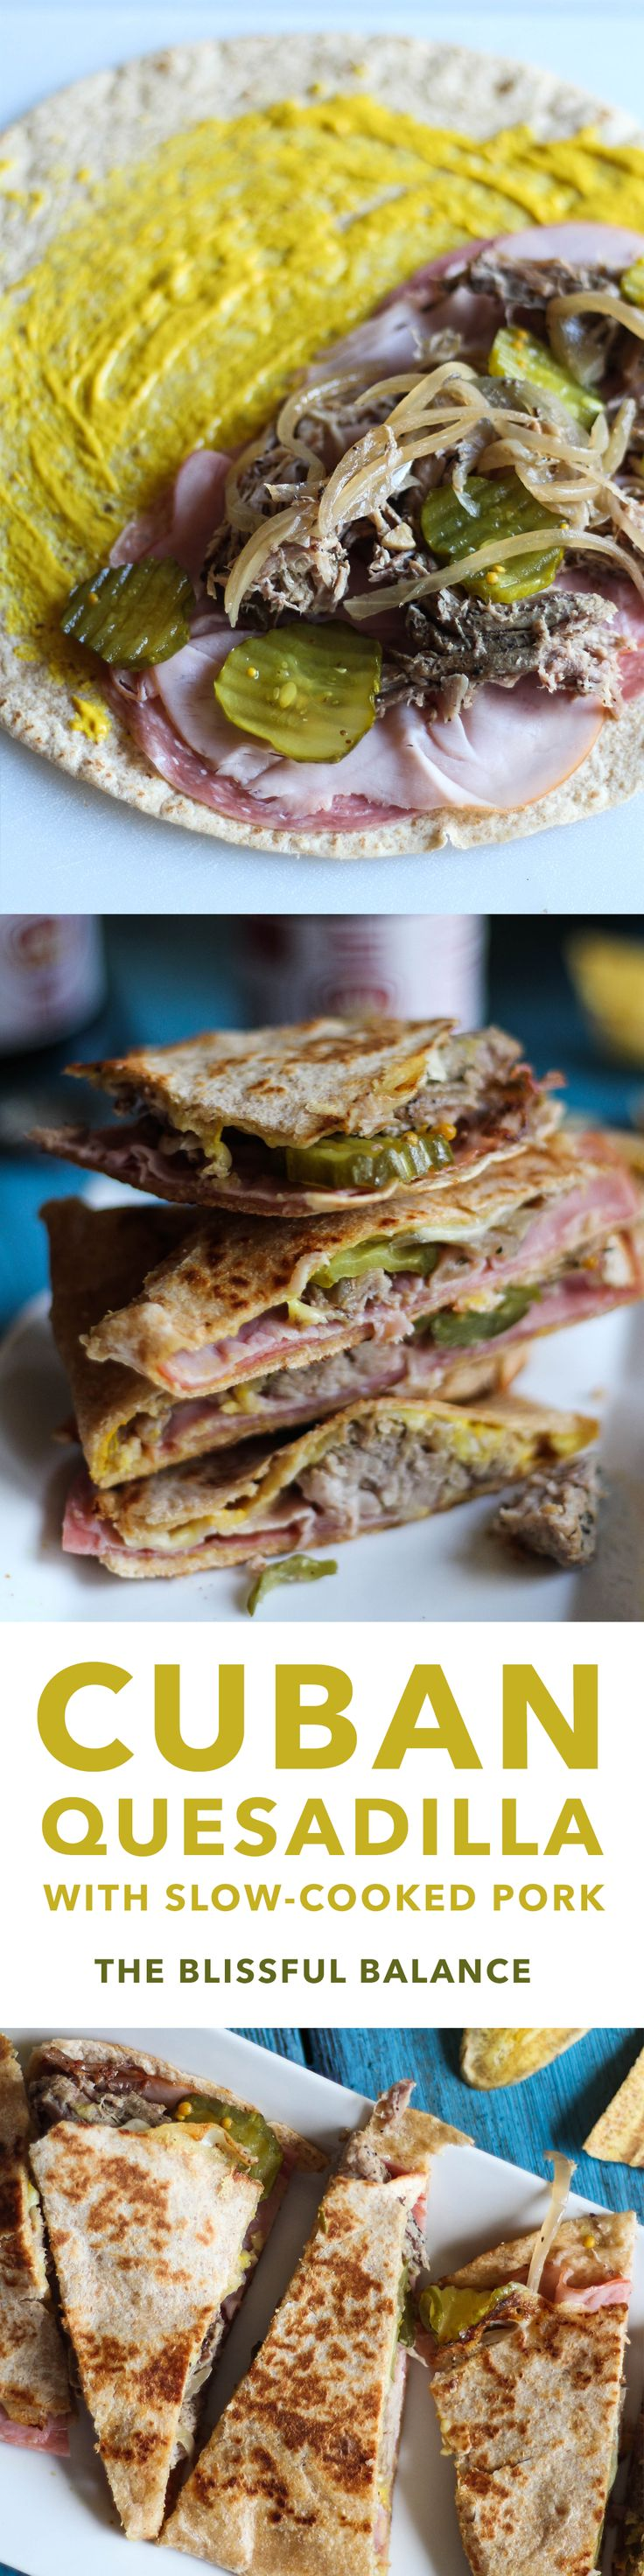 Cuban Quesadillas with Slow-Cooked Pork